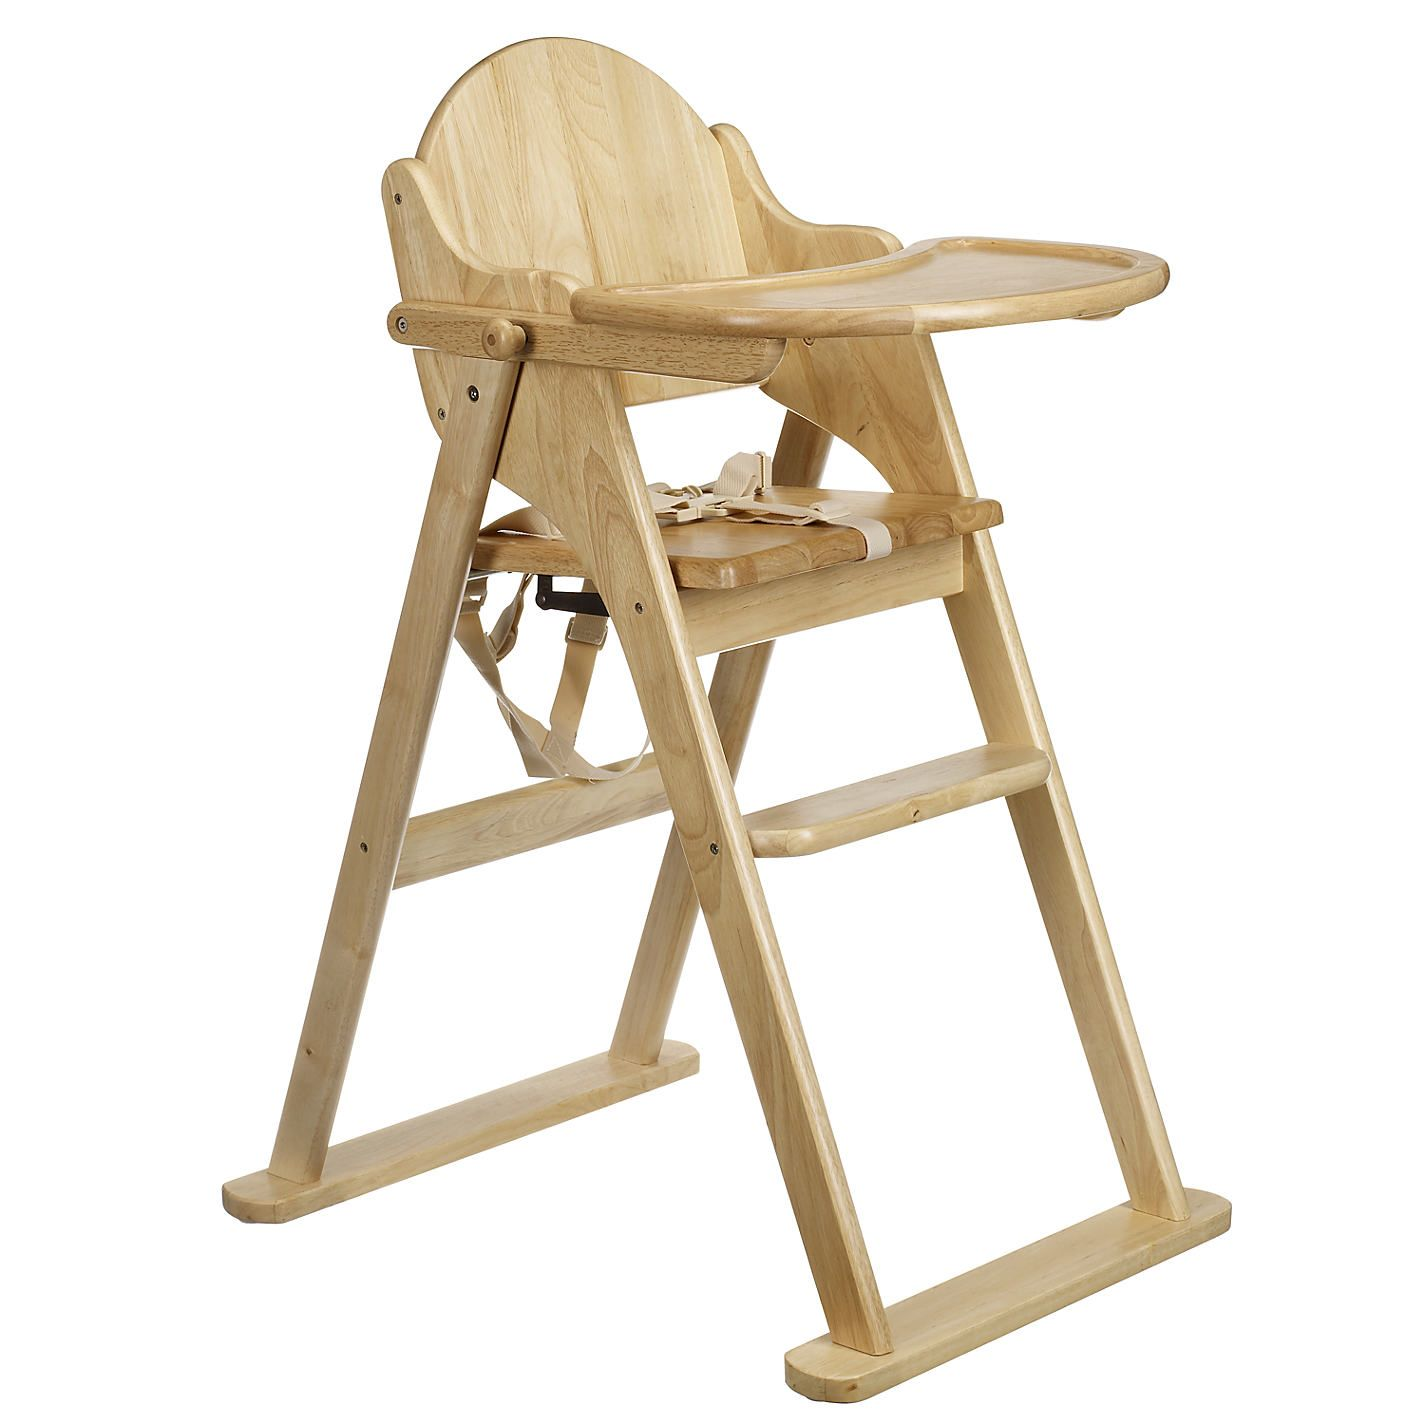 Shop Our Range Of High Chairs And Boosters For Your Baby, From Popular  Brands Such As Cosatto And Joie Baby, With Free Delivery On Orders Over